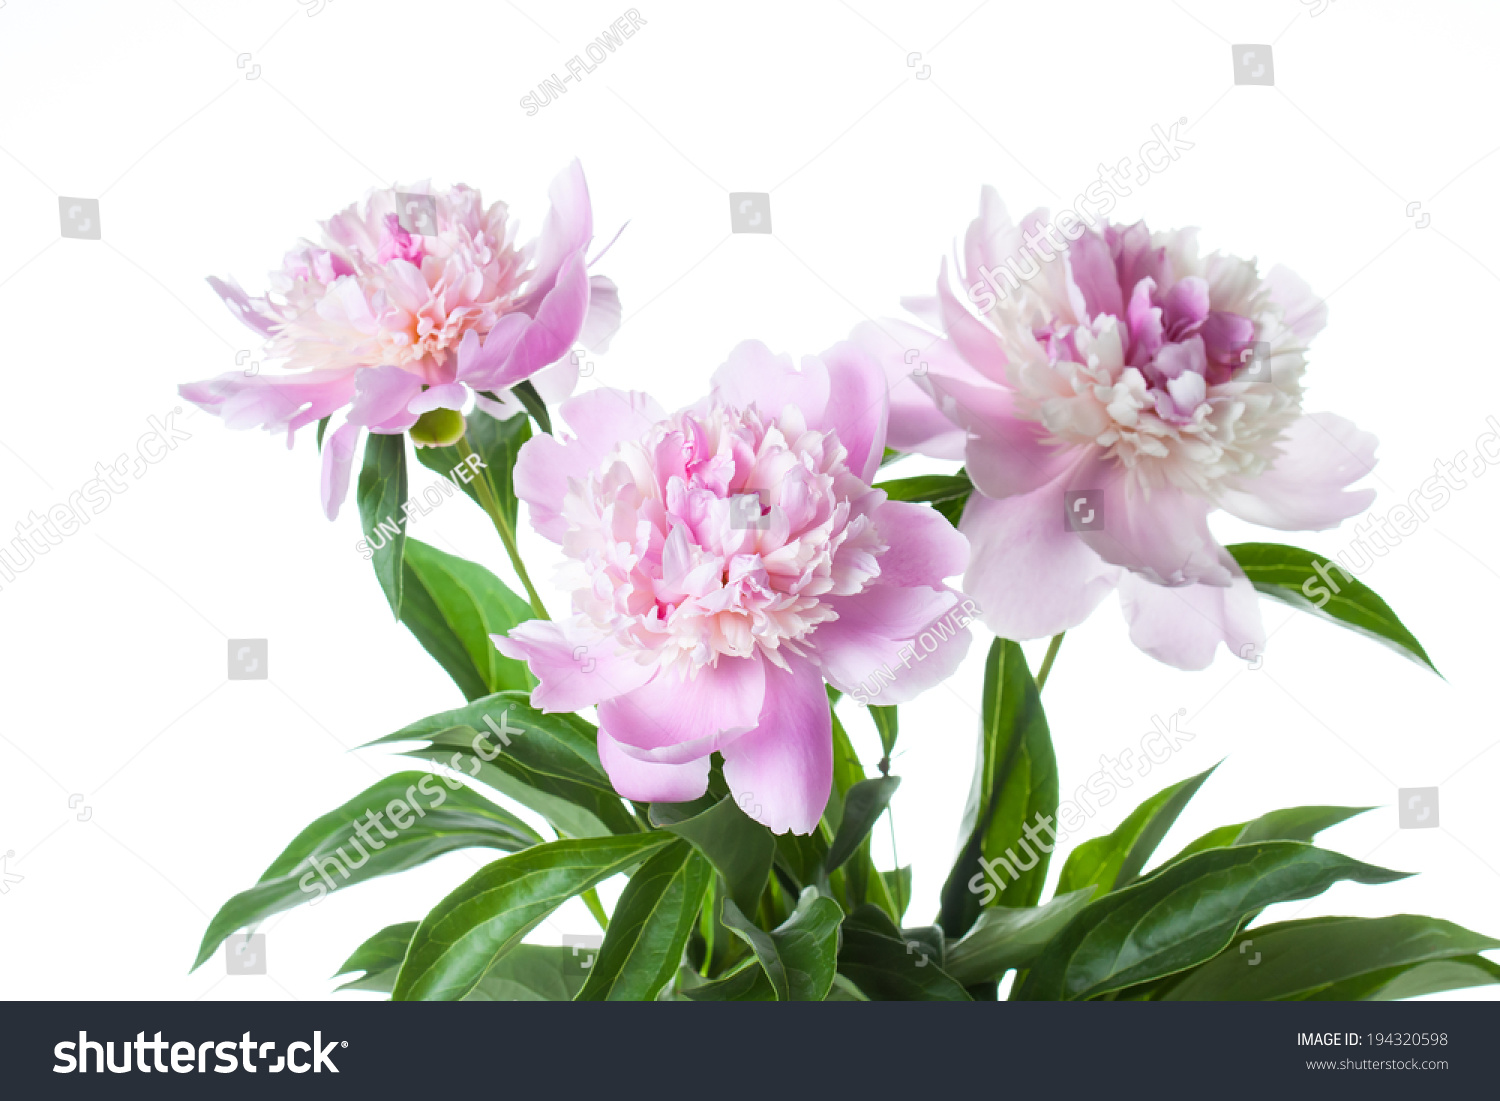 Peonies White Pink Flowers On White Background Closeup Spring